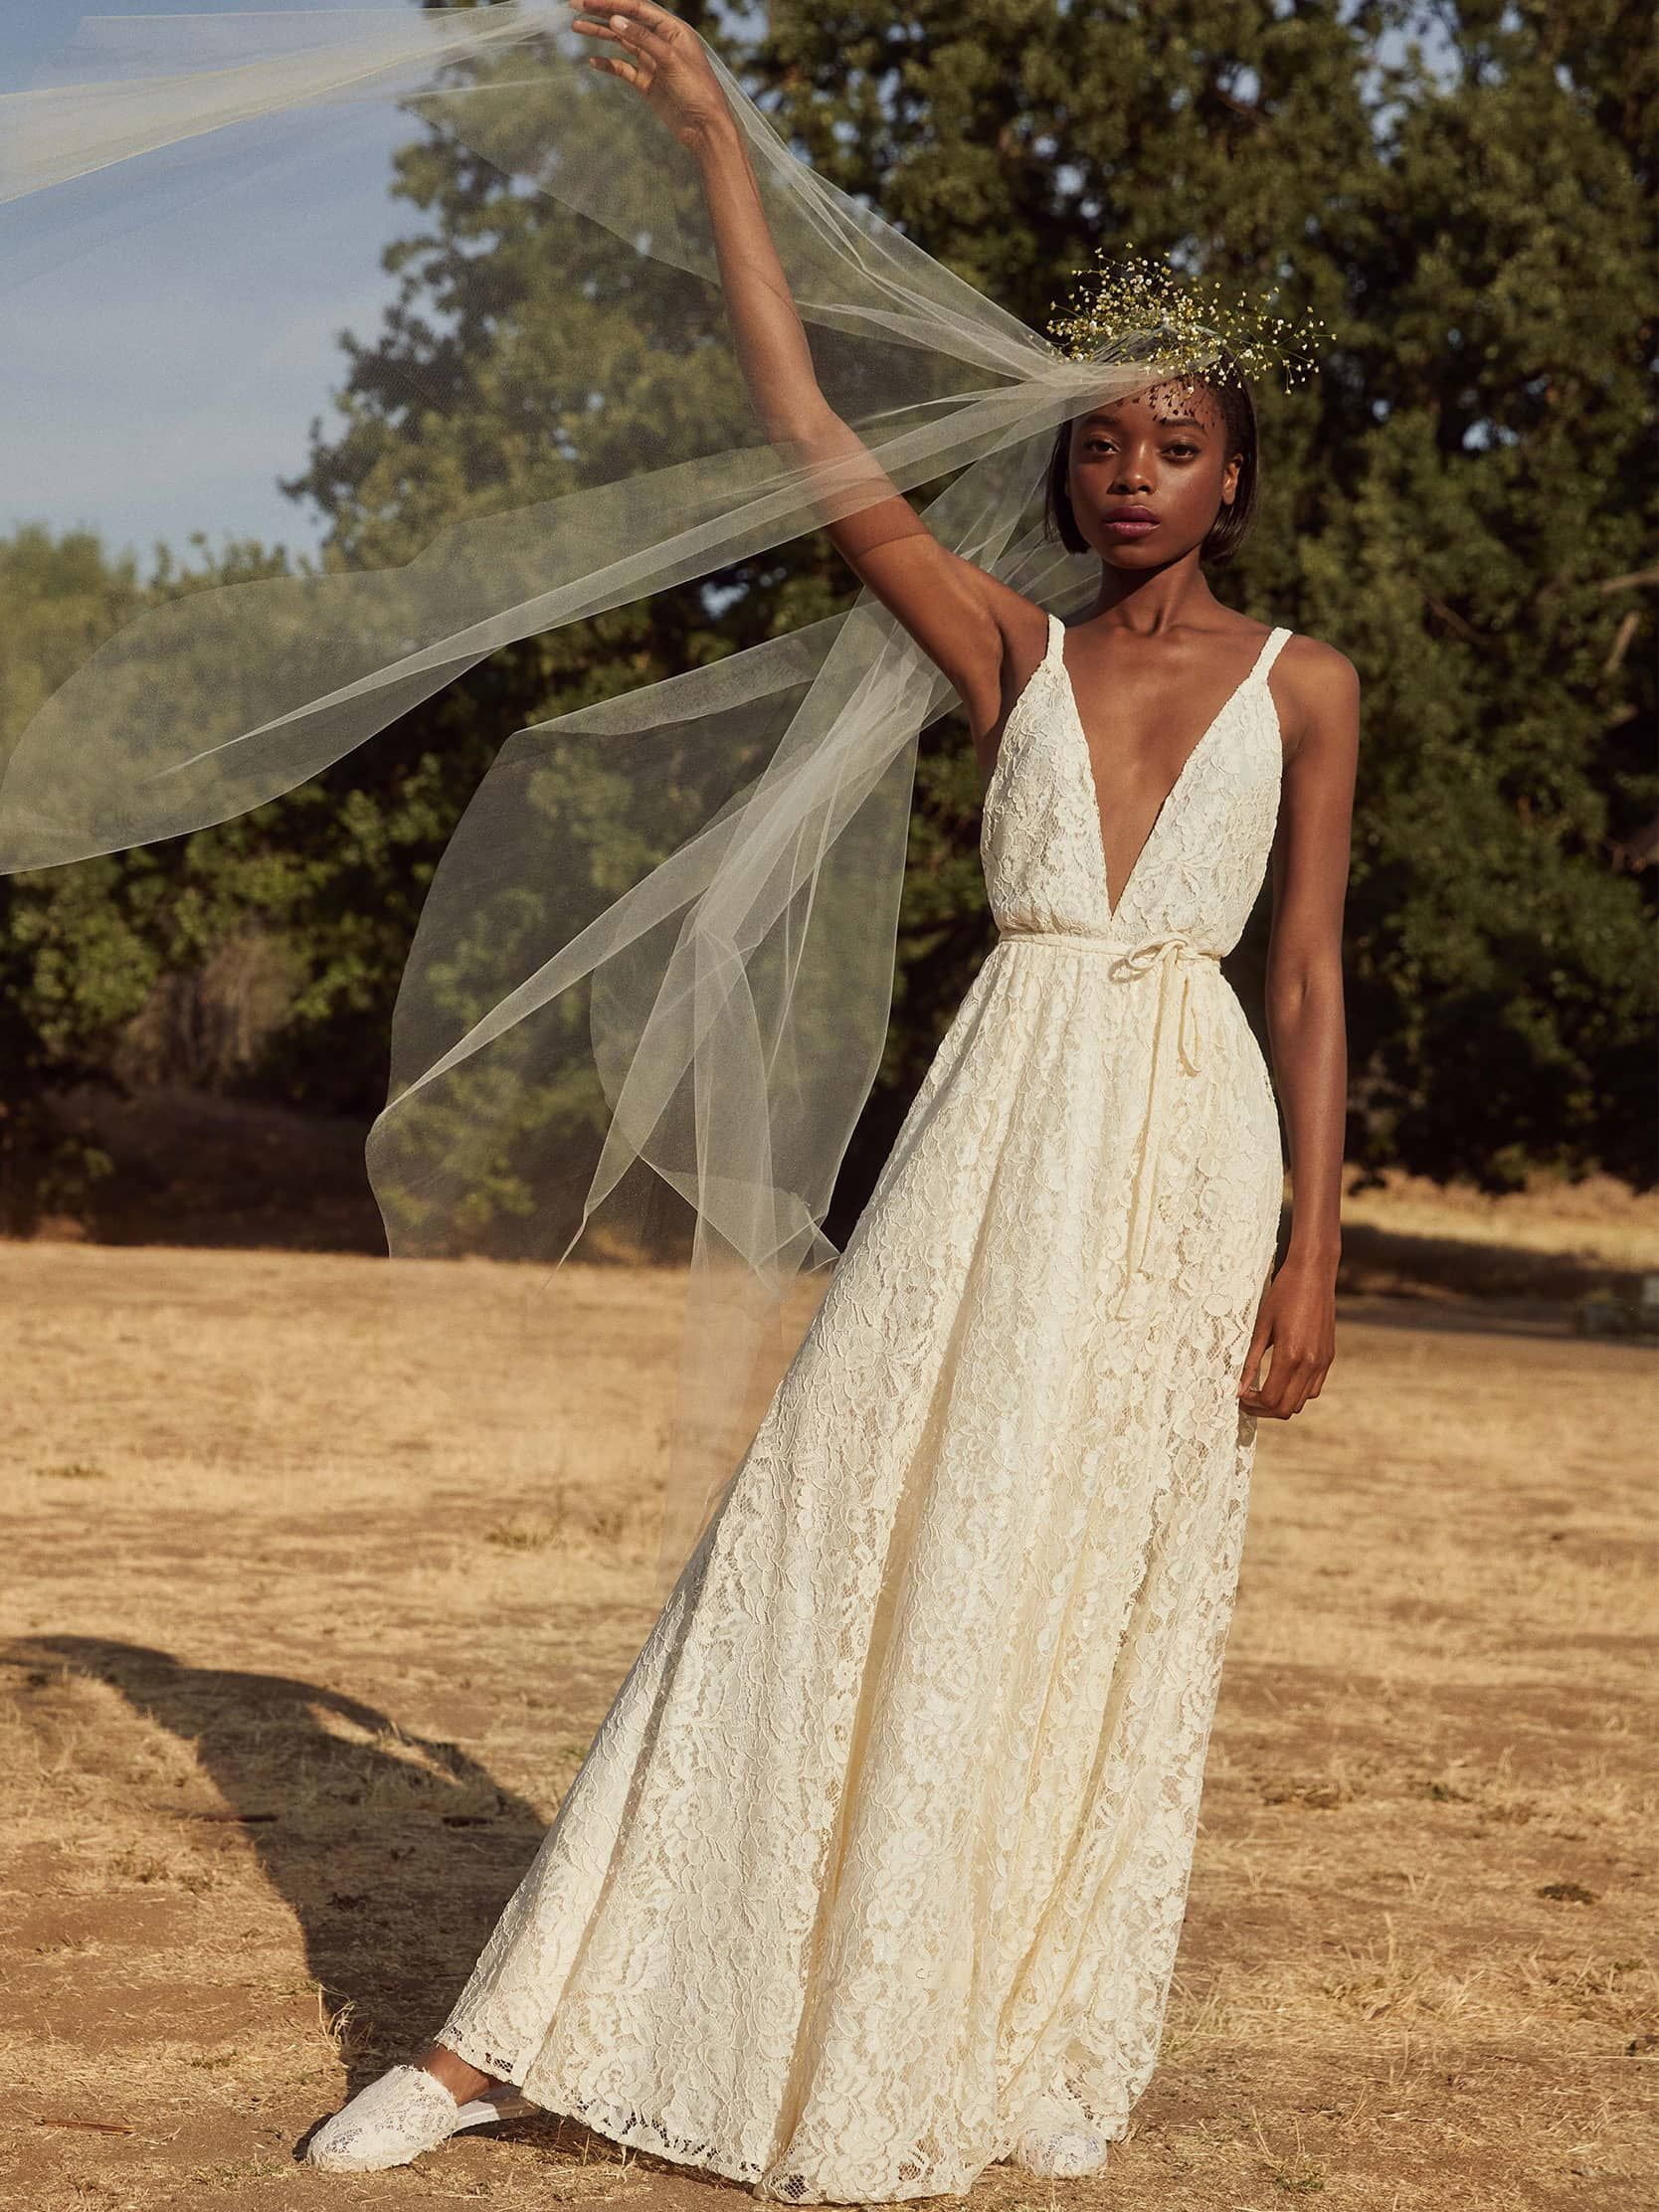 Beach Wedding Dresses For Every Type Of Bride In 2019 High Street Wedding Dresses Summer Wedding Dress Affordable Wedding Dresses [ 2224 x 1668 Pixel ]